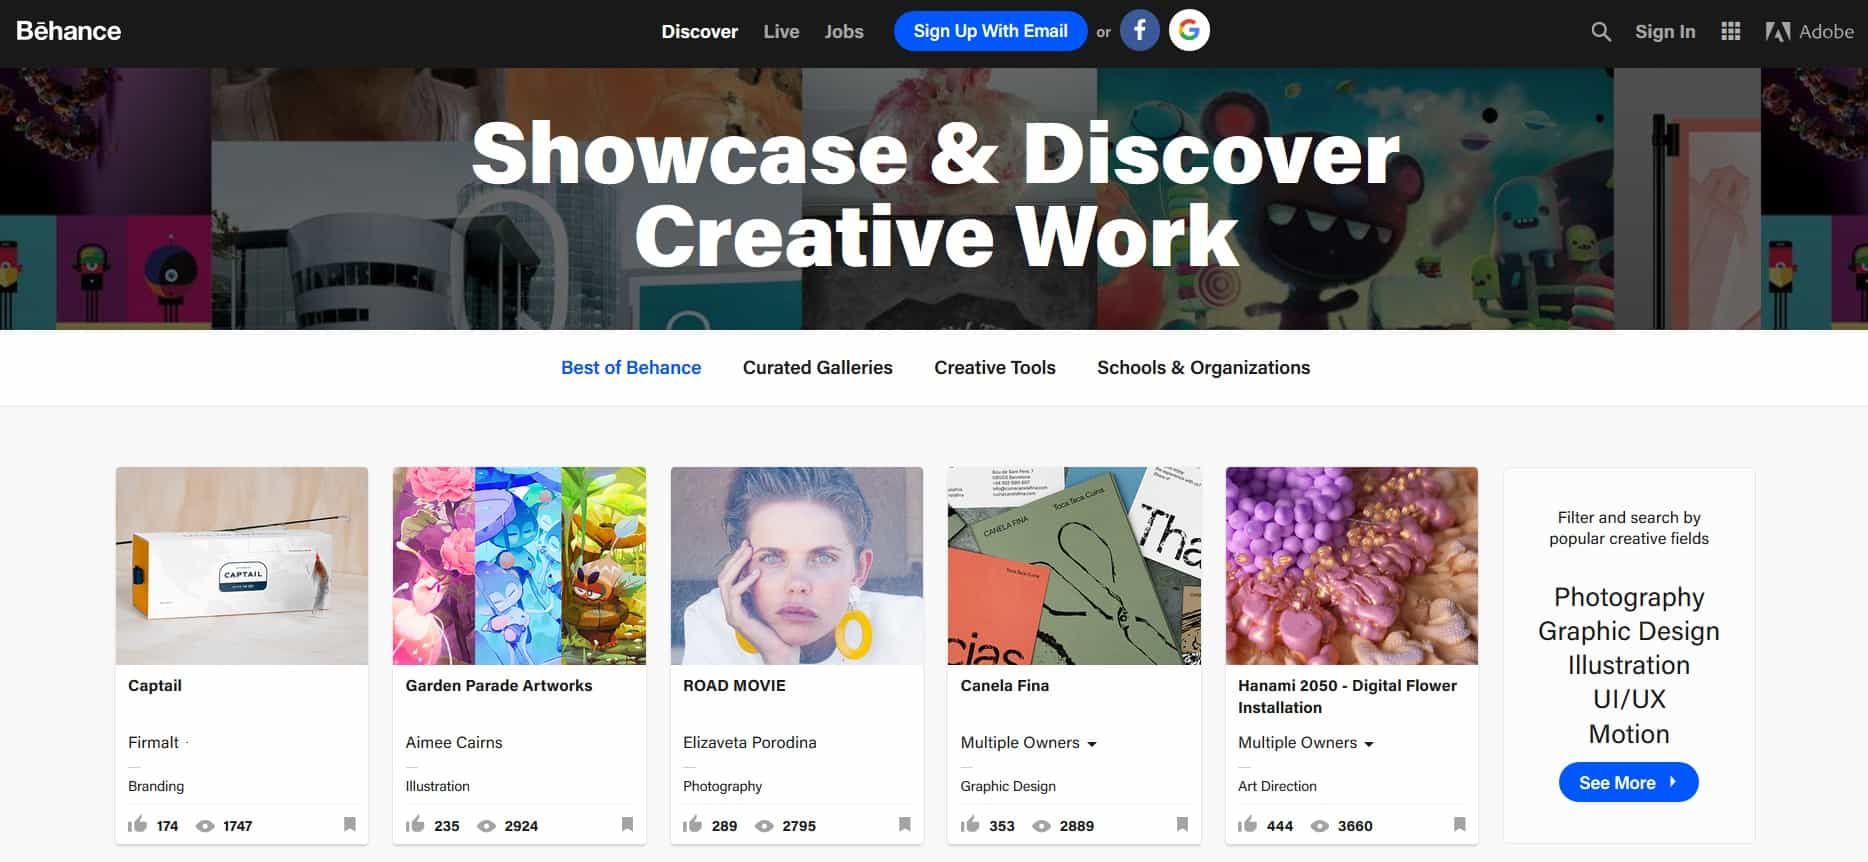 Behance is one of the great social media platforms for creators.